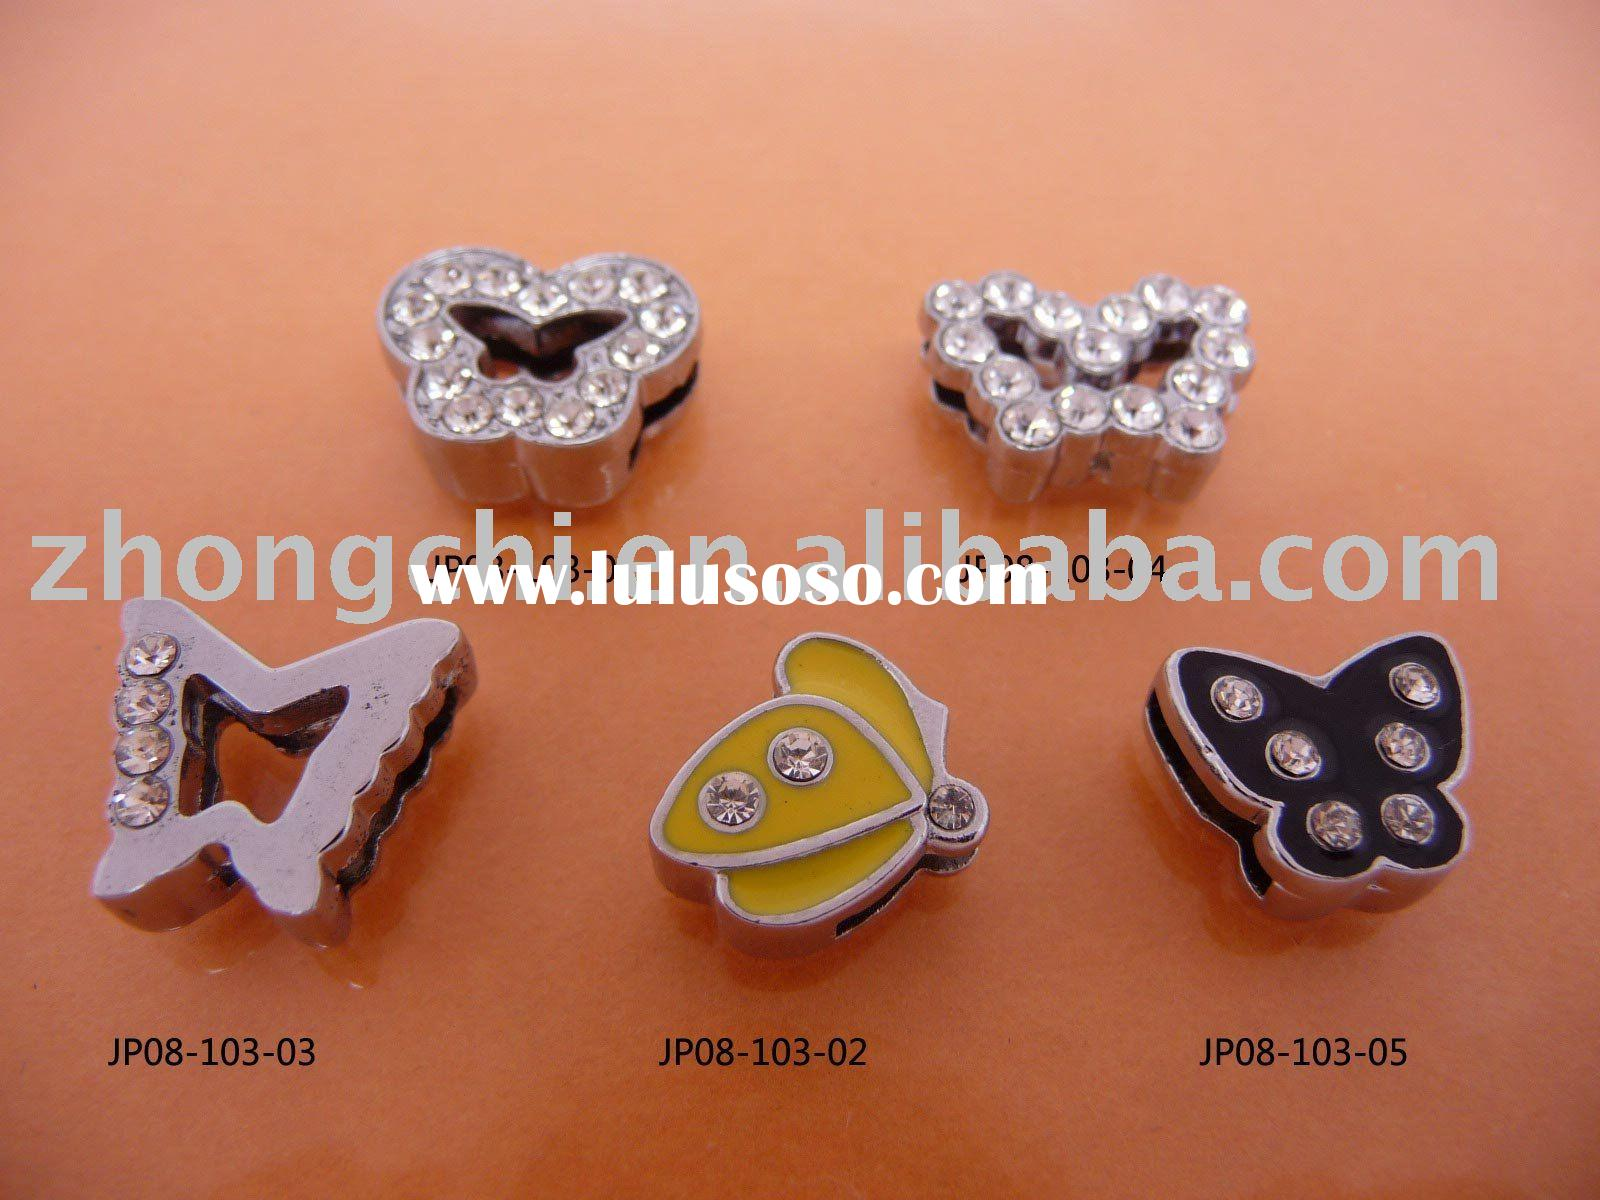 rhinestone slide charms for bracelets,phone straps,dog collars